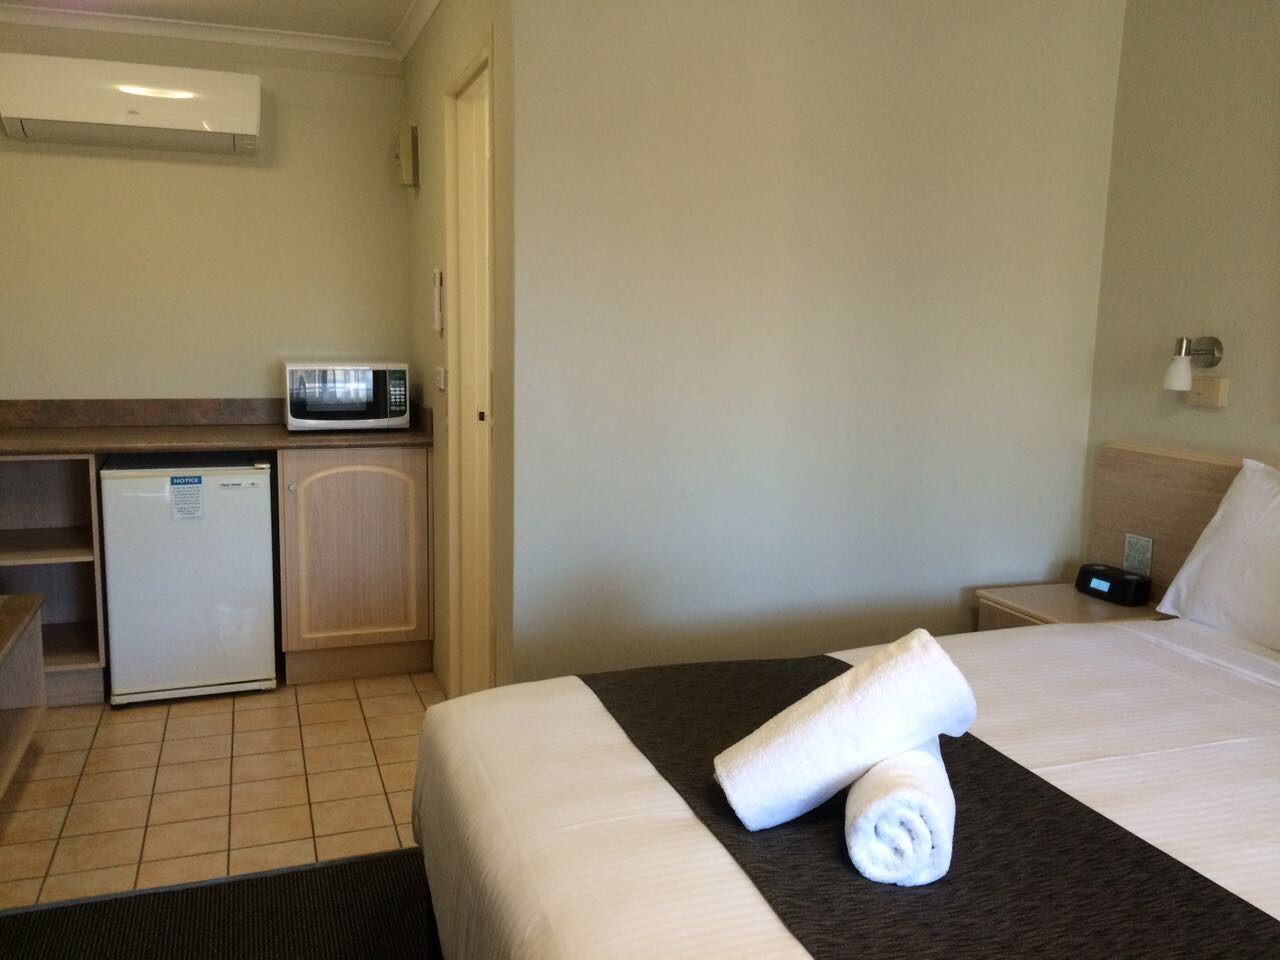 Microwaves in all Executive rooms